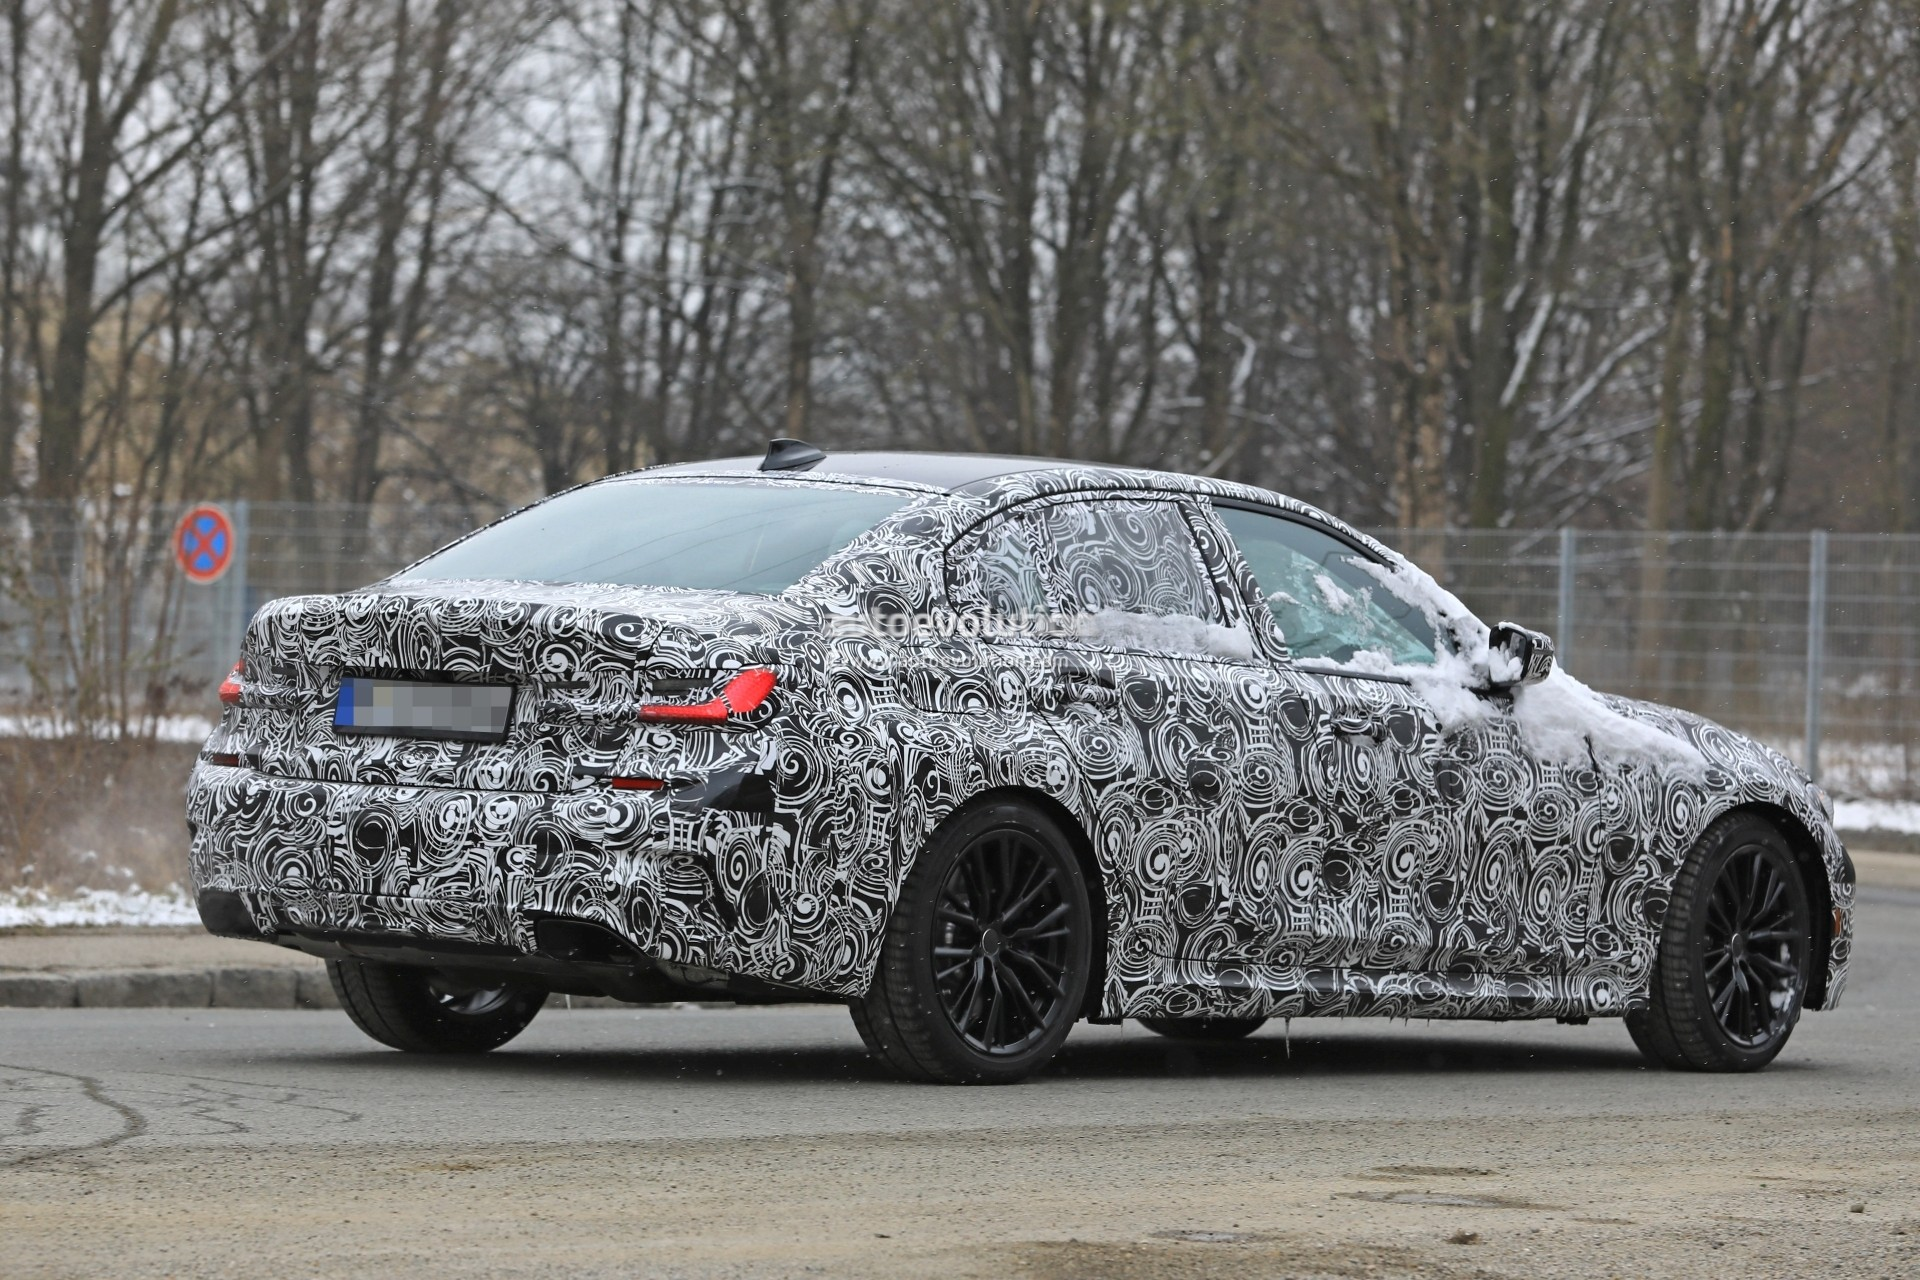 Bmw G20 3 Series >> Spyshots: 2019 BMW 3 Series Shows Baby 5 Series Look with Sportier Details - autoevolution